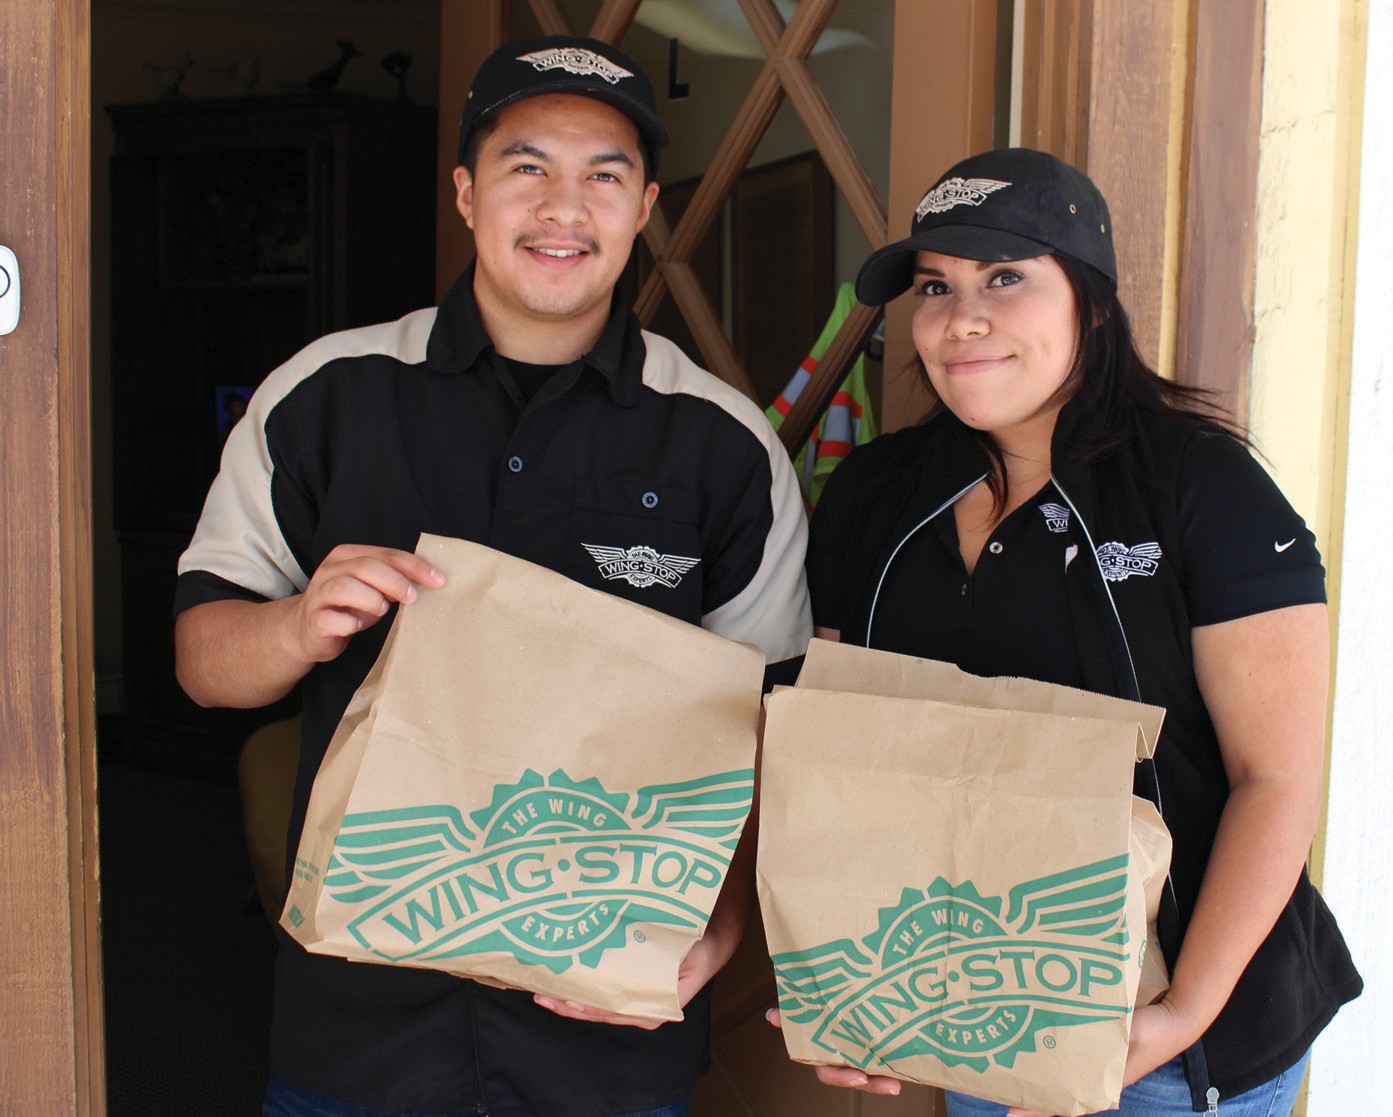 """The newest restaurant in town, Wingstop, made a visit at the Times-Advocate office on Tuesday with six different kinds of tasty wings, along with some sides. They ranged from """"atomic"""" to traditional to sweet and sour and Parmesan flavored. Tanya Guerrero, general manager of the new Wingstop and her assistant, Andy Saldivar, delivered the wings. The Times-Advocate staff dug in and, after munching on about ten pieces apiece were far too heavy to fly away any time soon. Wingstop is located at 1815 E. Valley Parkway."""